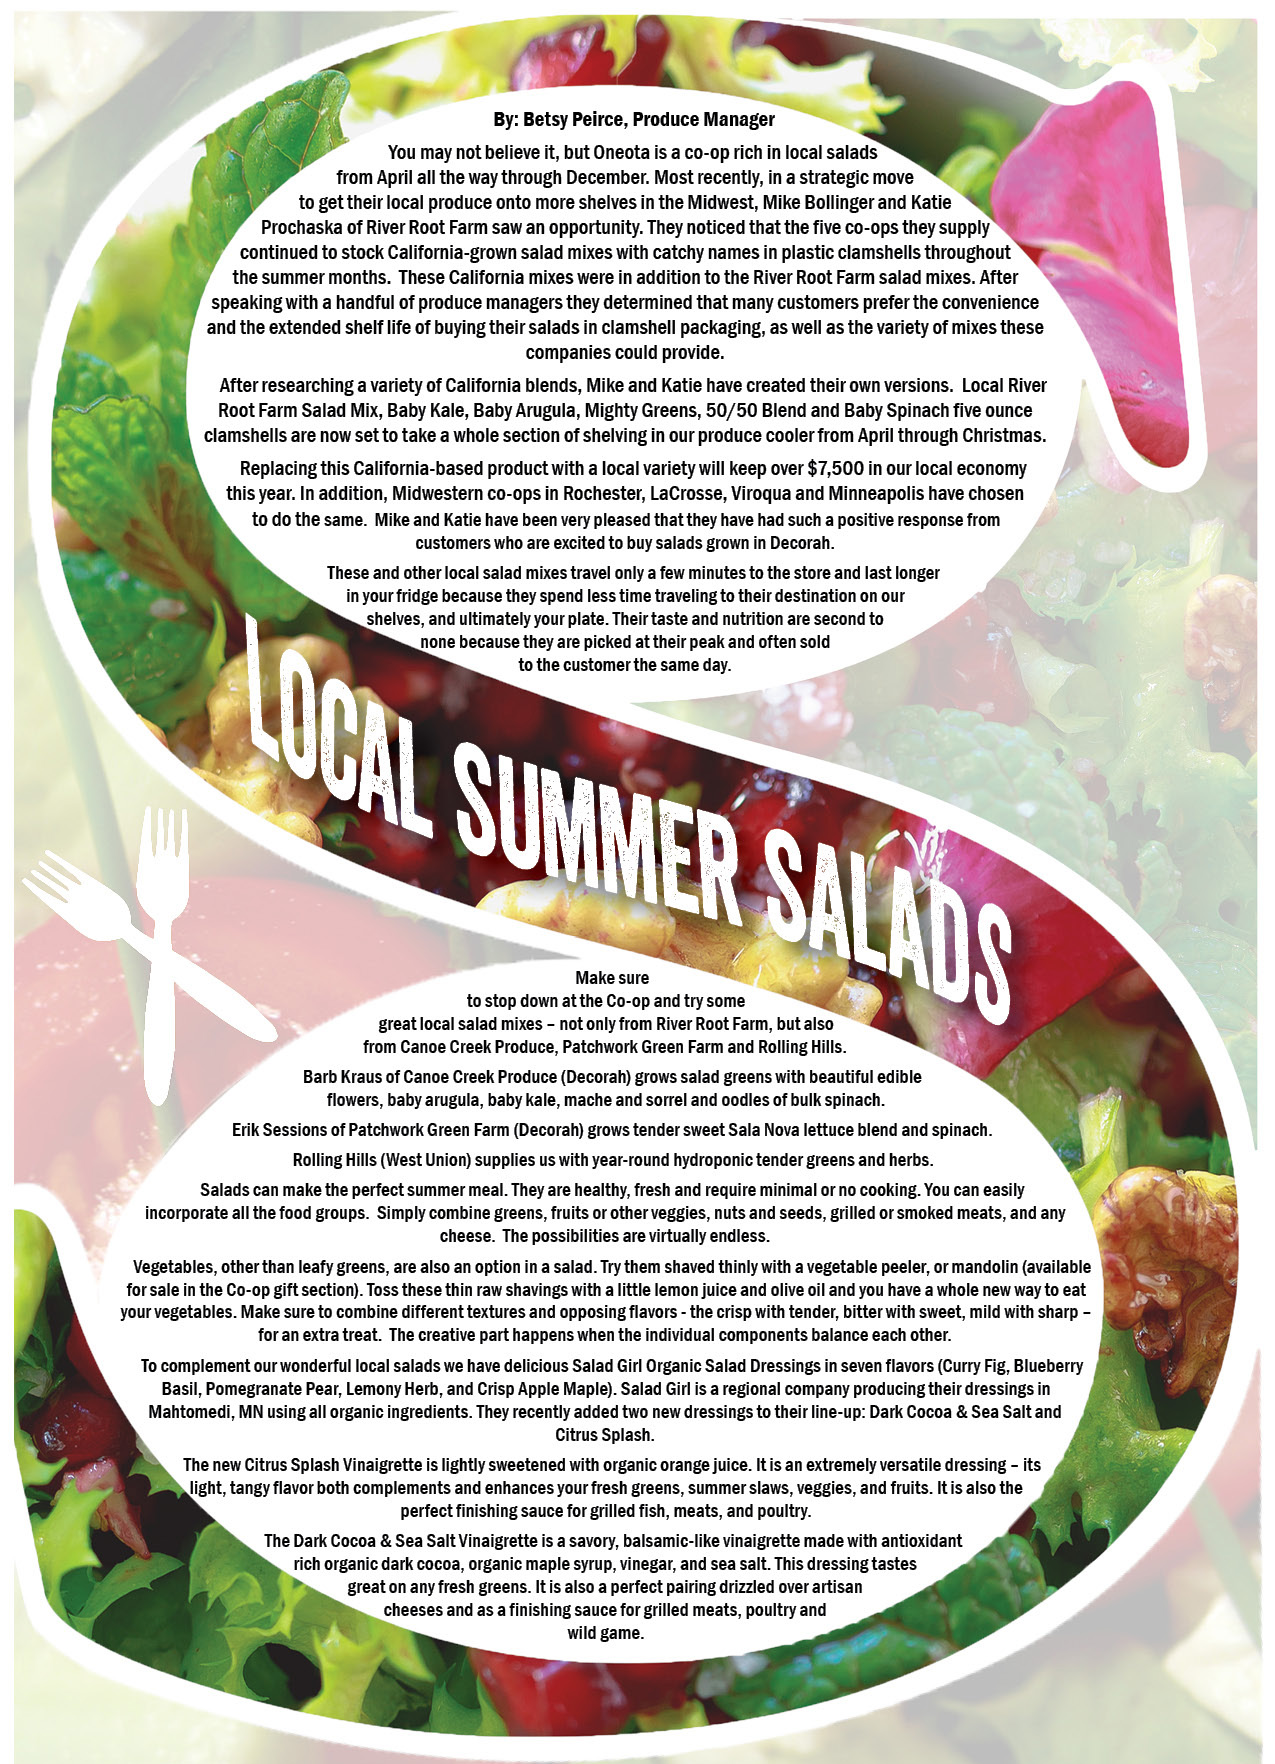 Local Summer Salads_Graphic_Web